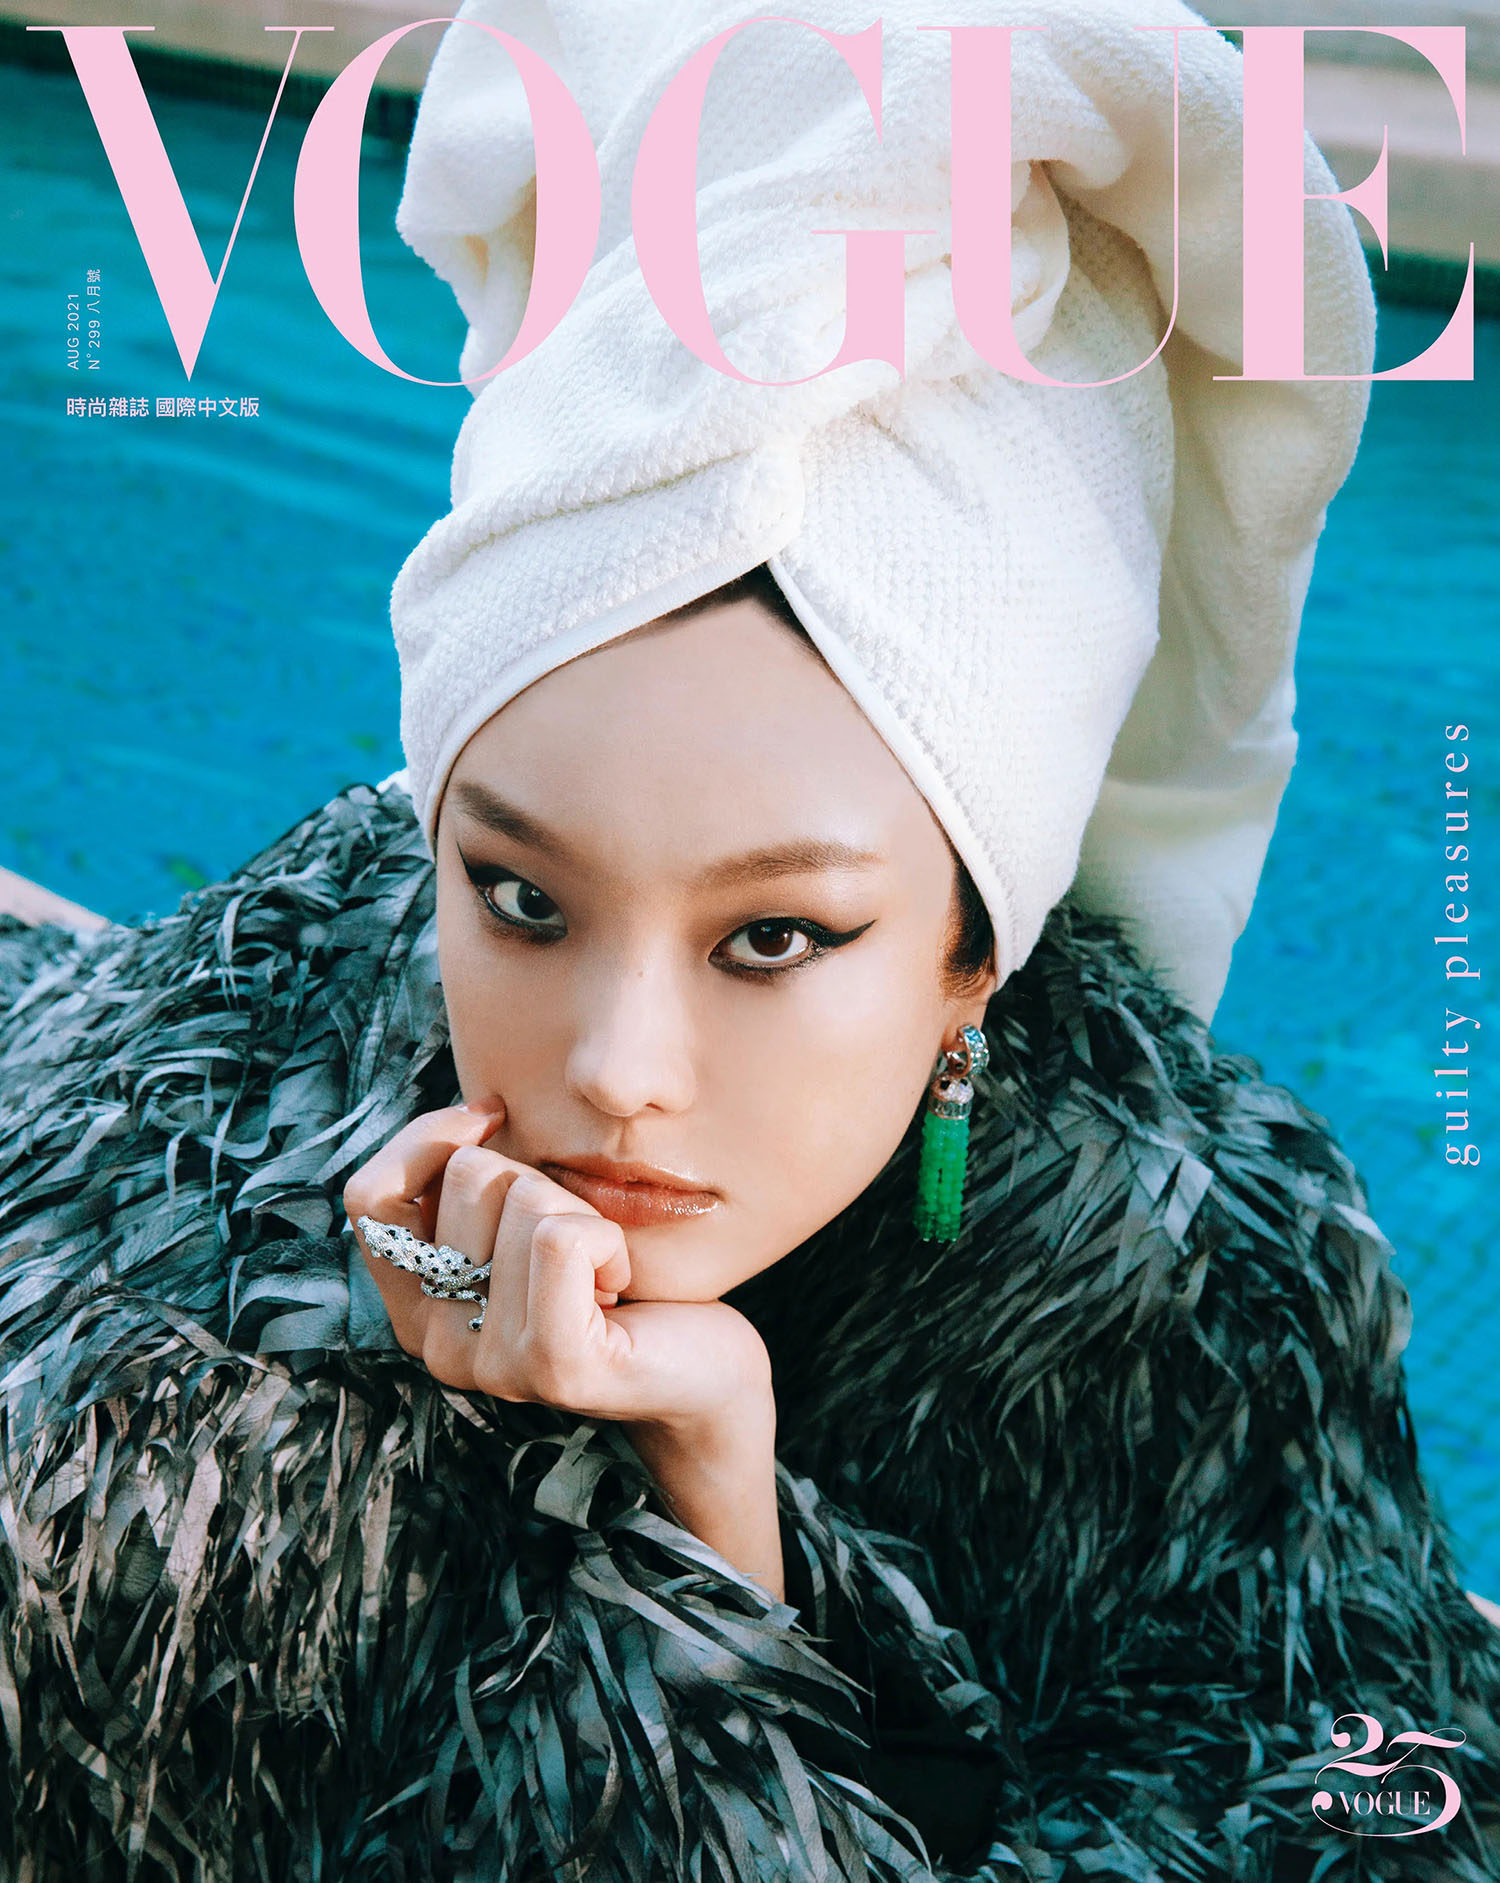 Gia Tang covers Vogue Taiwan August 2021 by Manbo Key & Chien-Wen Lin